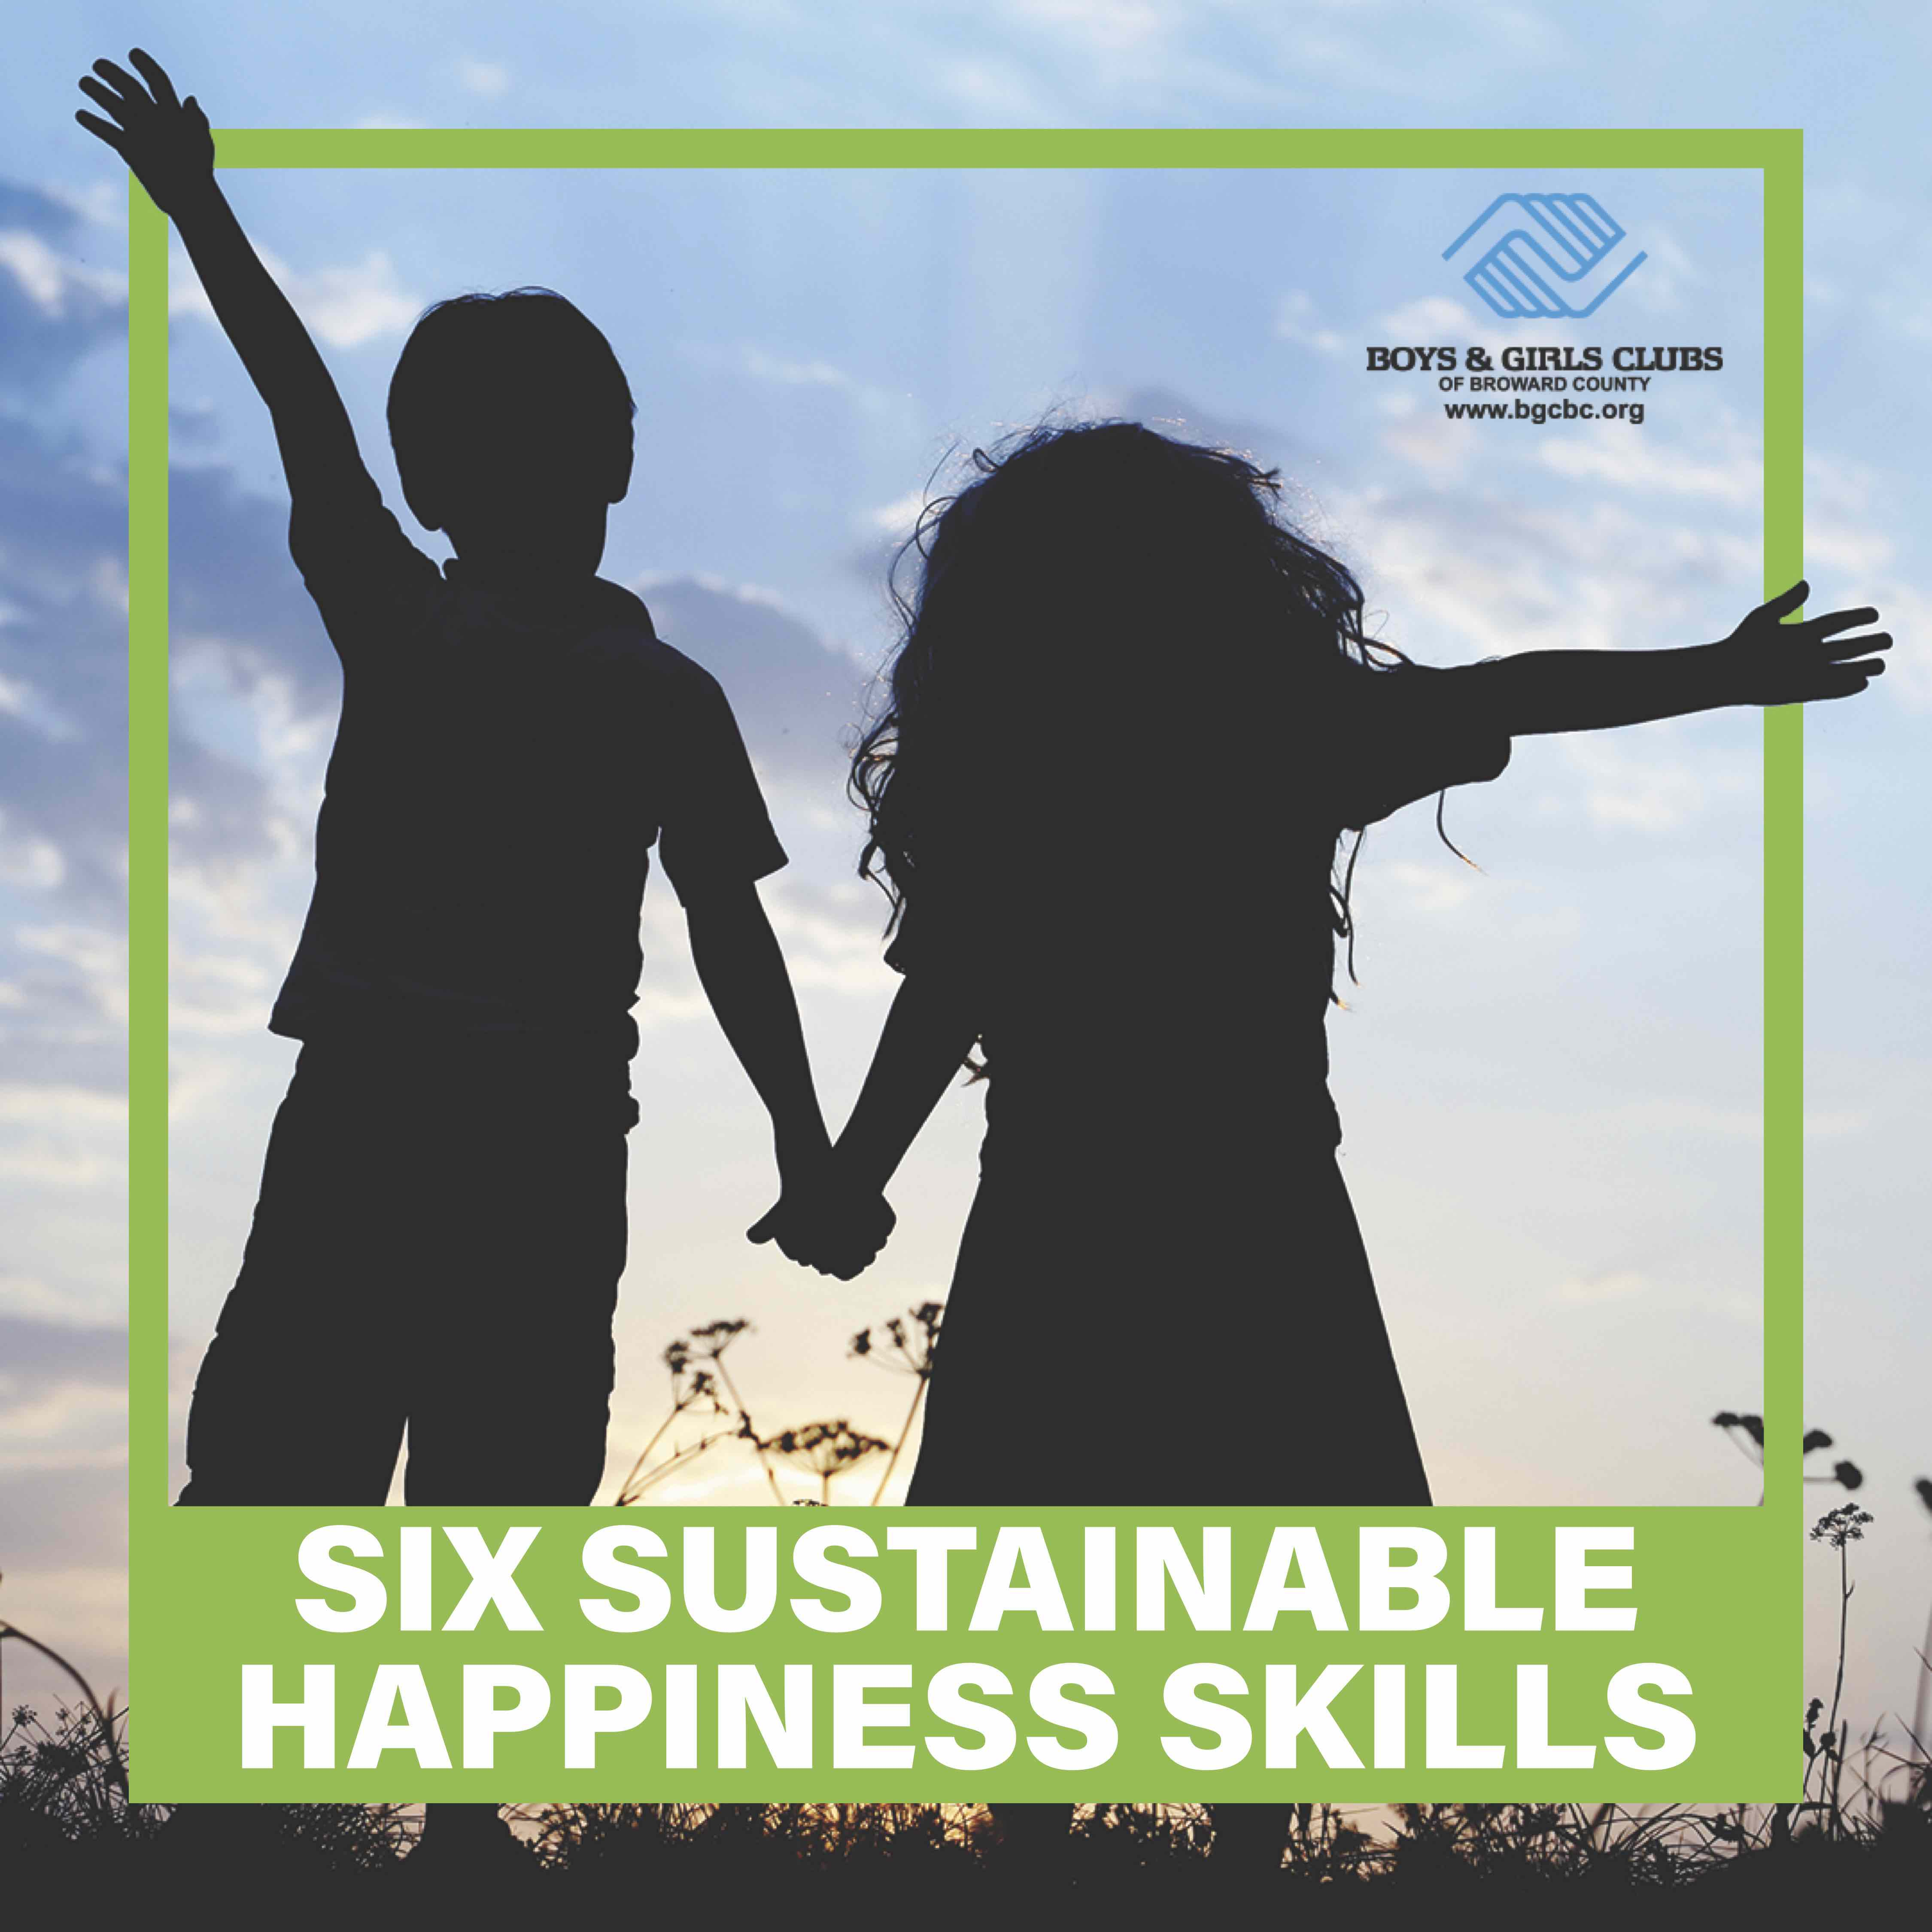 Six Sustainable Happiness Skills